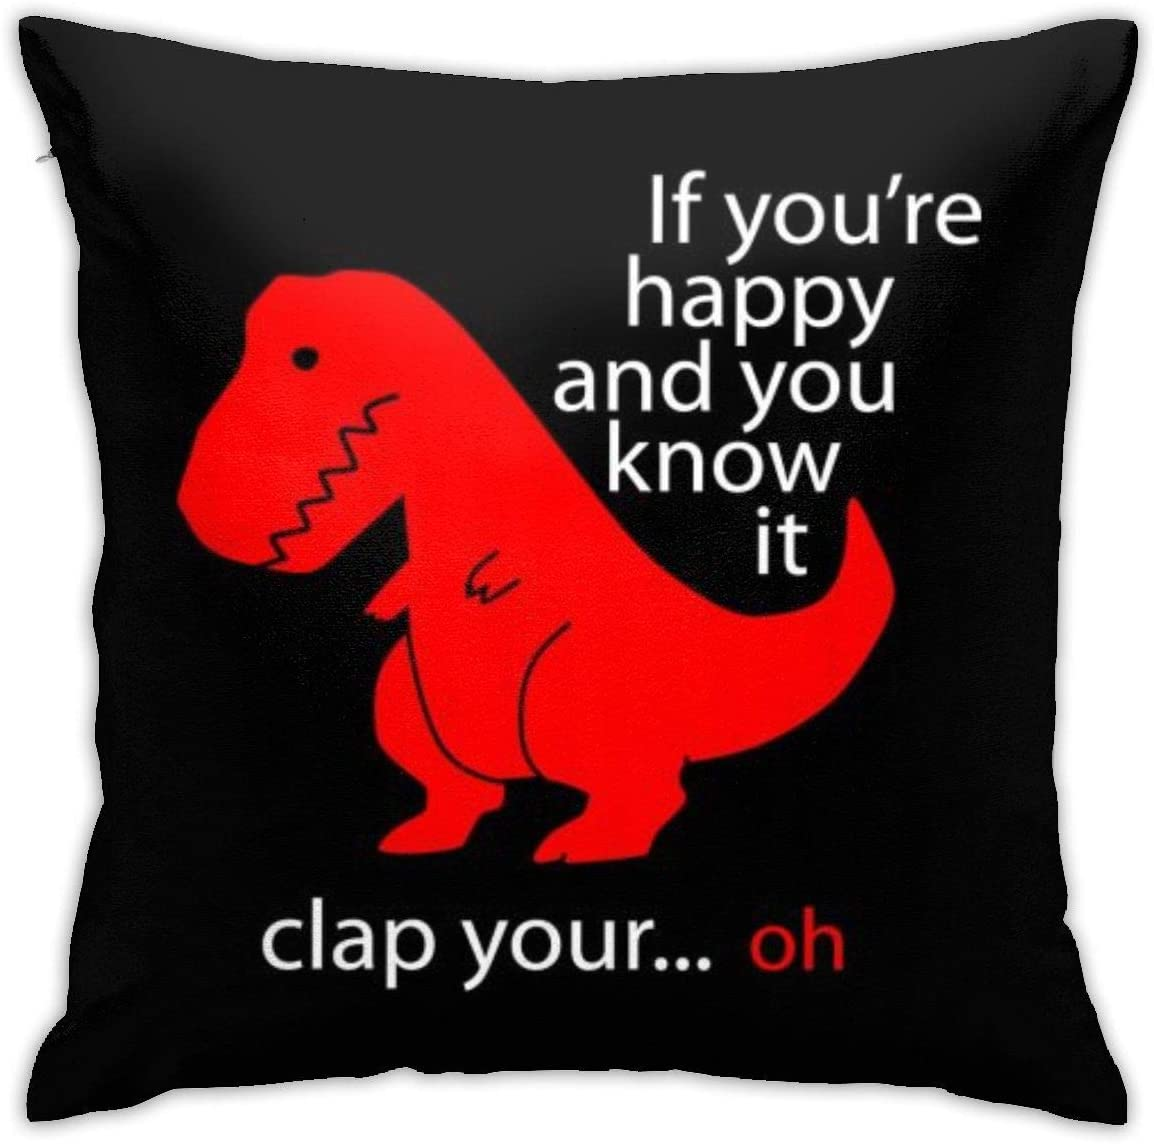 ZHIZHEND Funny Dinosaur Decorative Throw Pillow Cushion Covers 18x18inch for Kids Boys,Throw Pillow Cases for Couch Bedroom Car(Red Sad Dino If You are Happy You Know It Letter)